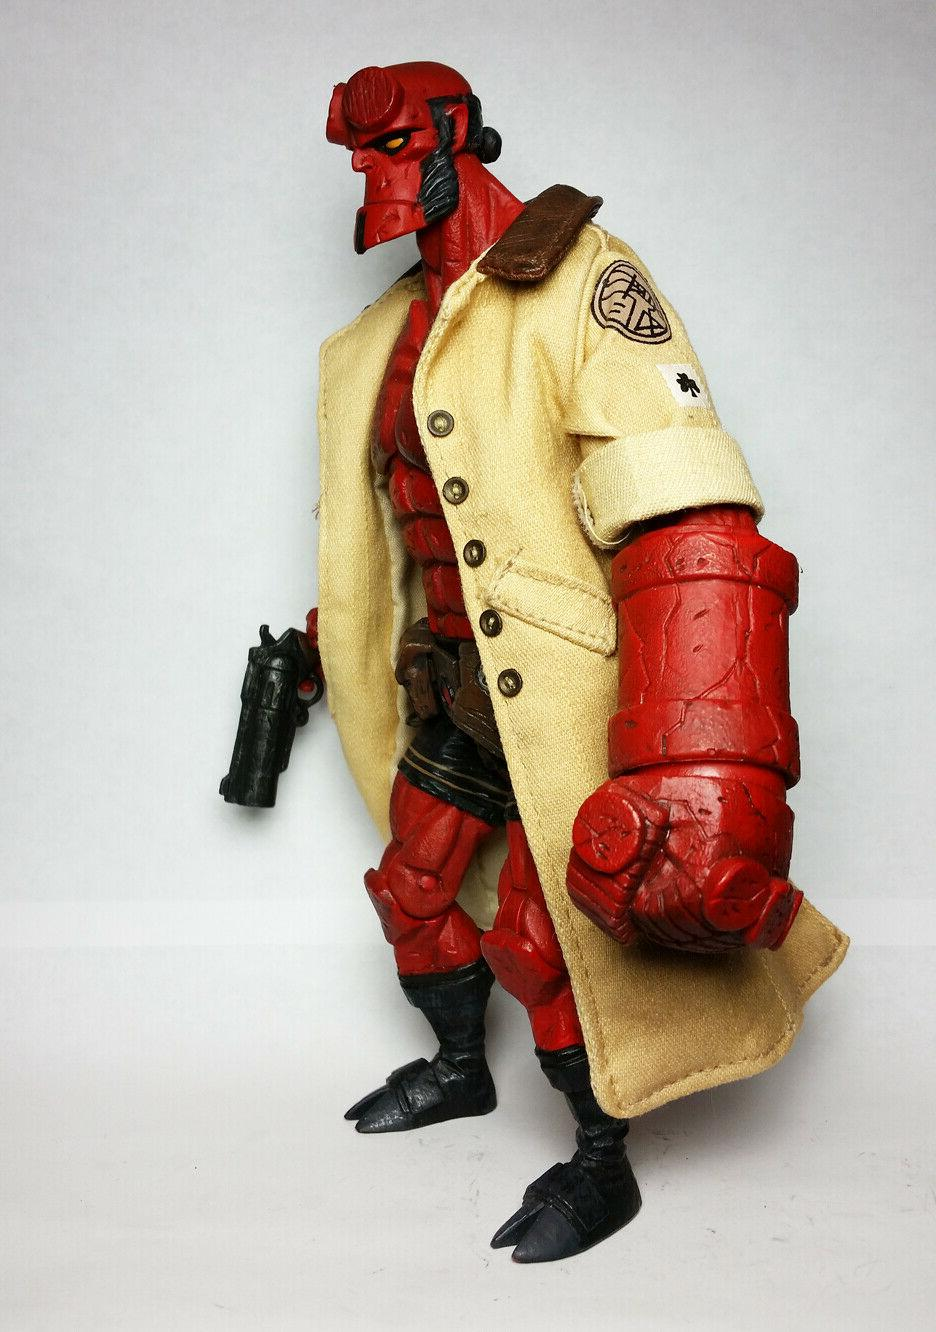 Mezco with Floating Action Figure 2006 SDCC